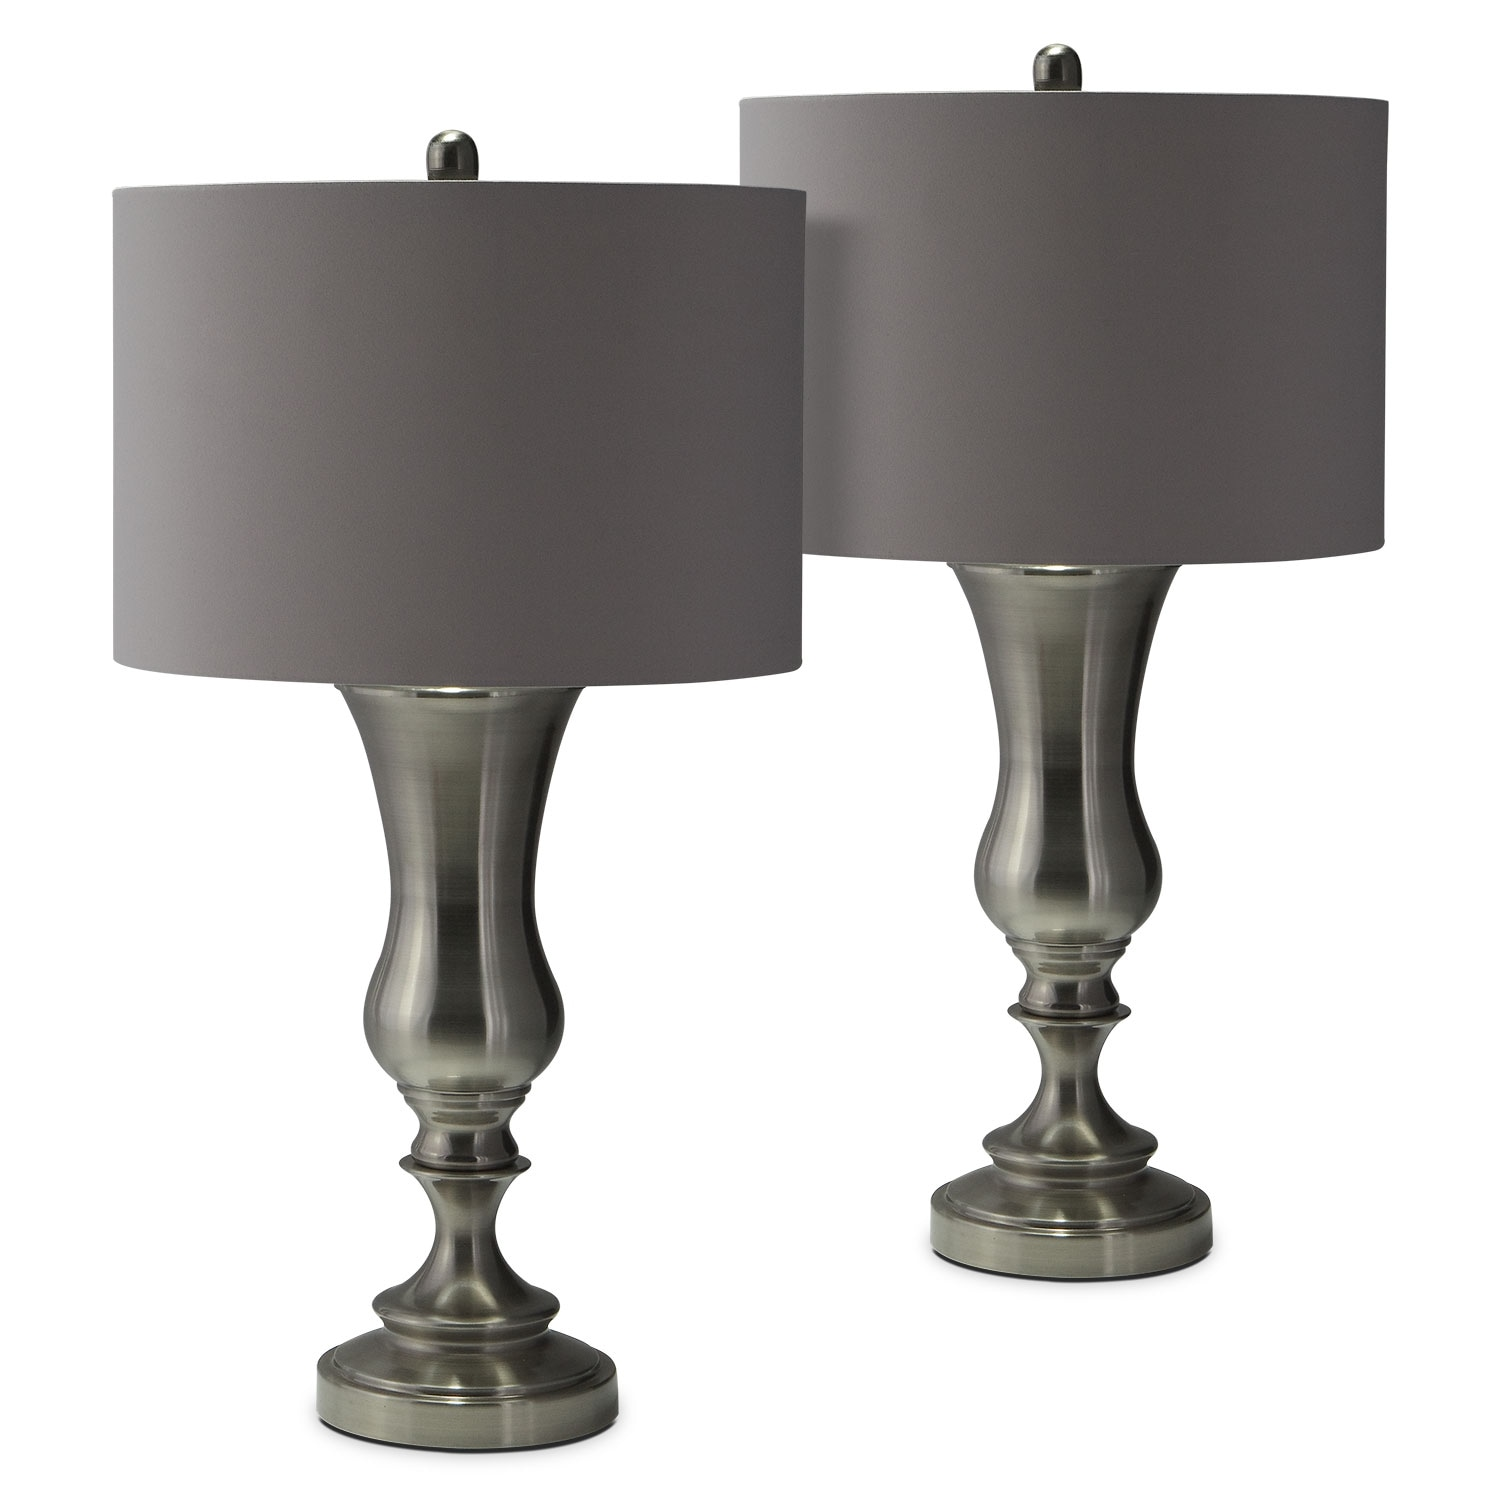 Brush Coal Urn 2-Pack Table Lamp Set